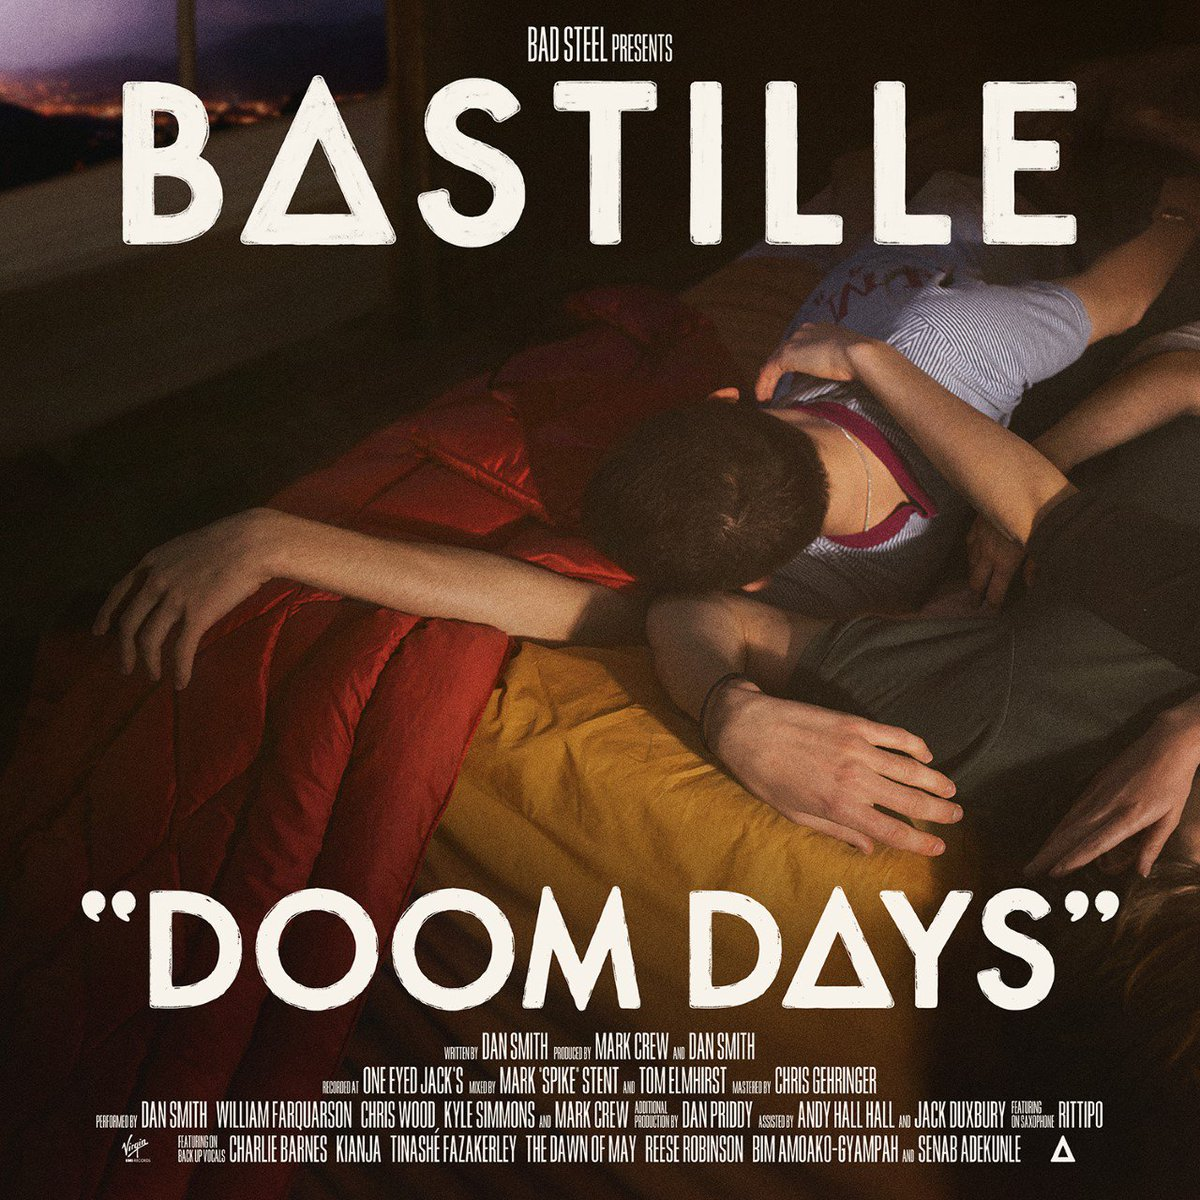 """Our third album """"Doom Days"""" is officially out, now! We really hope you love it as much as we've loved making it.  Listen/buy: http://bastille.lnk.to/DoomDaysAlbumVTW…  #DoomDays"""